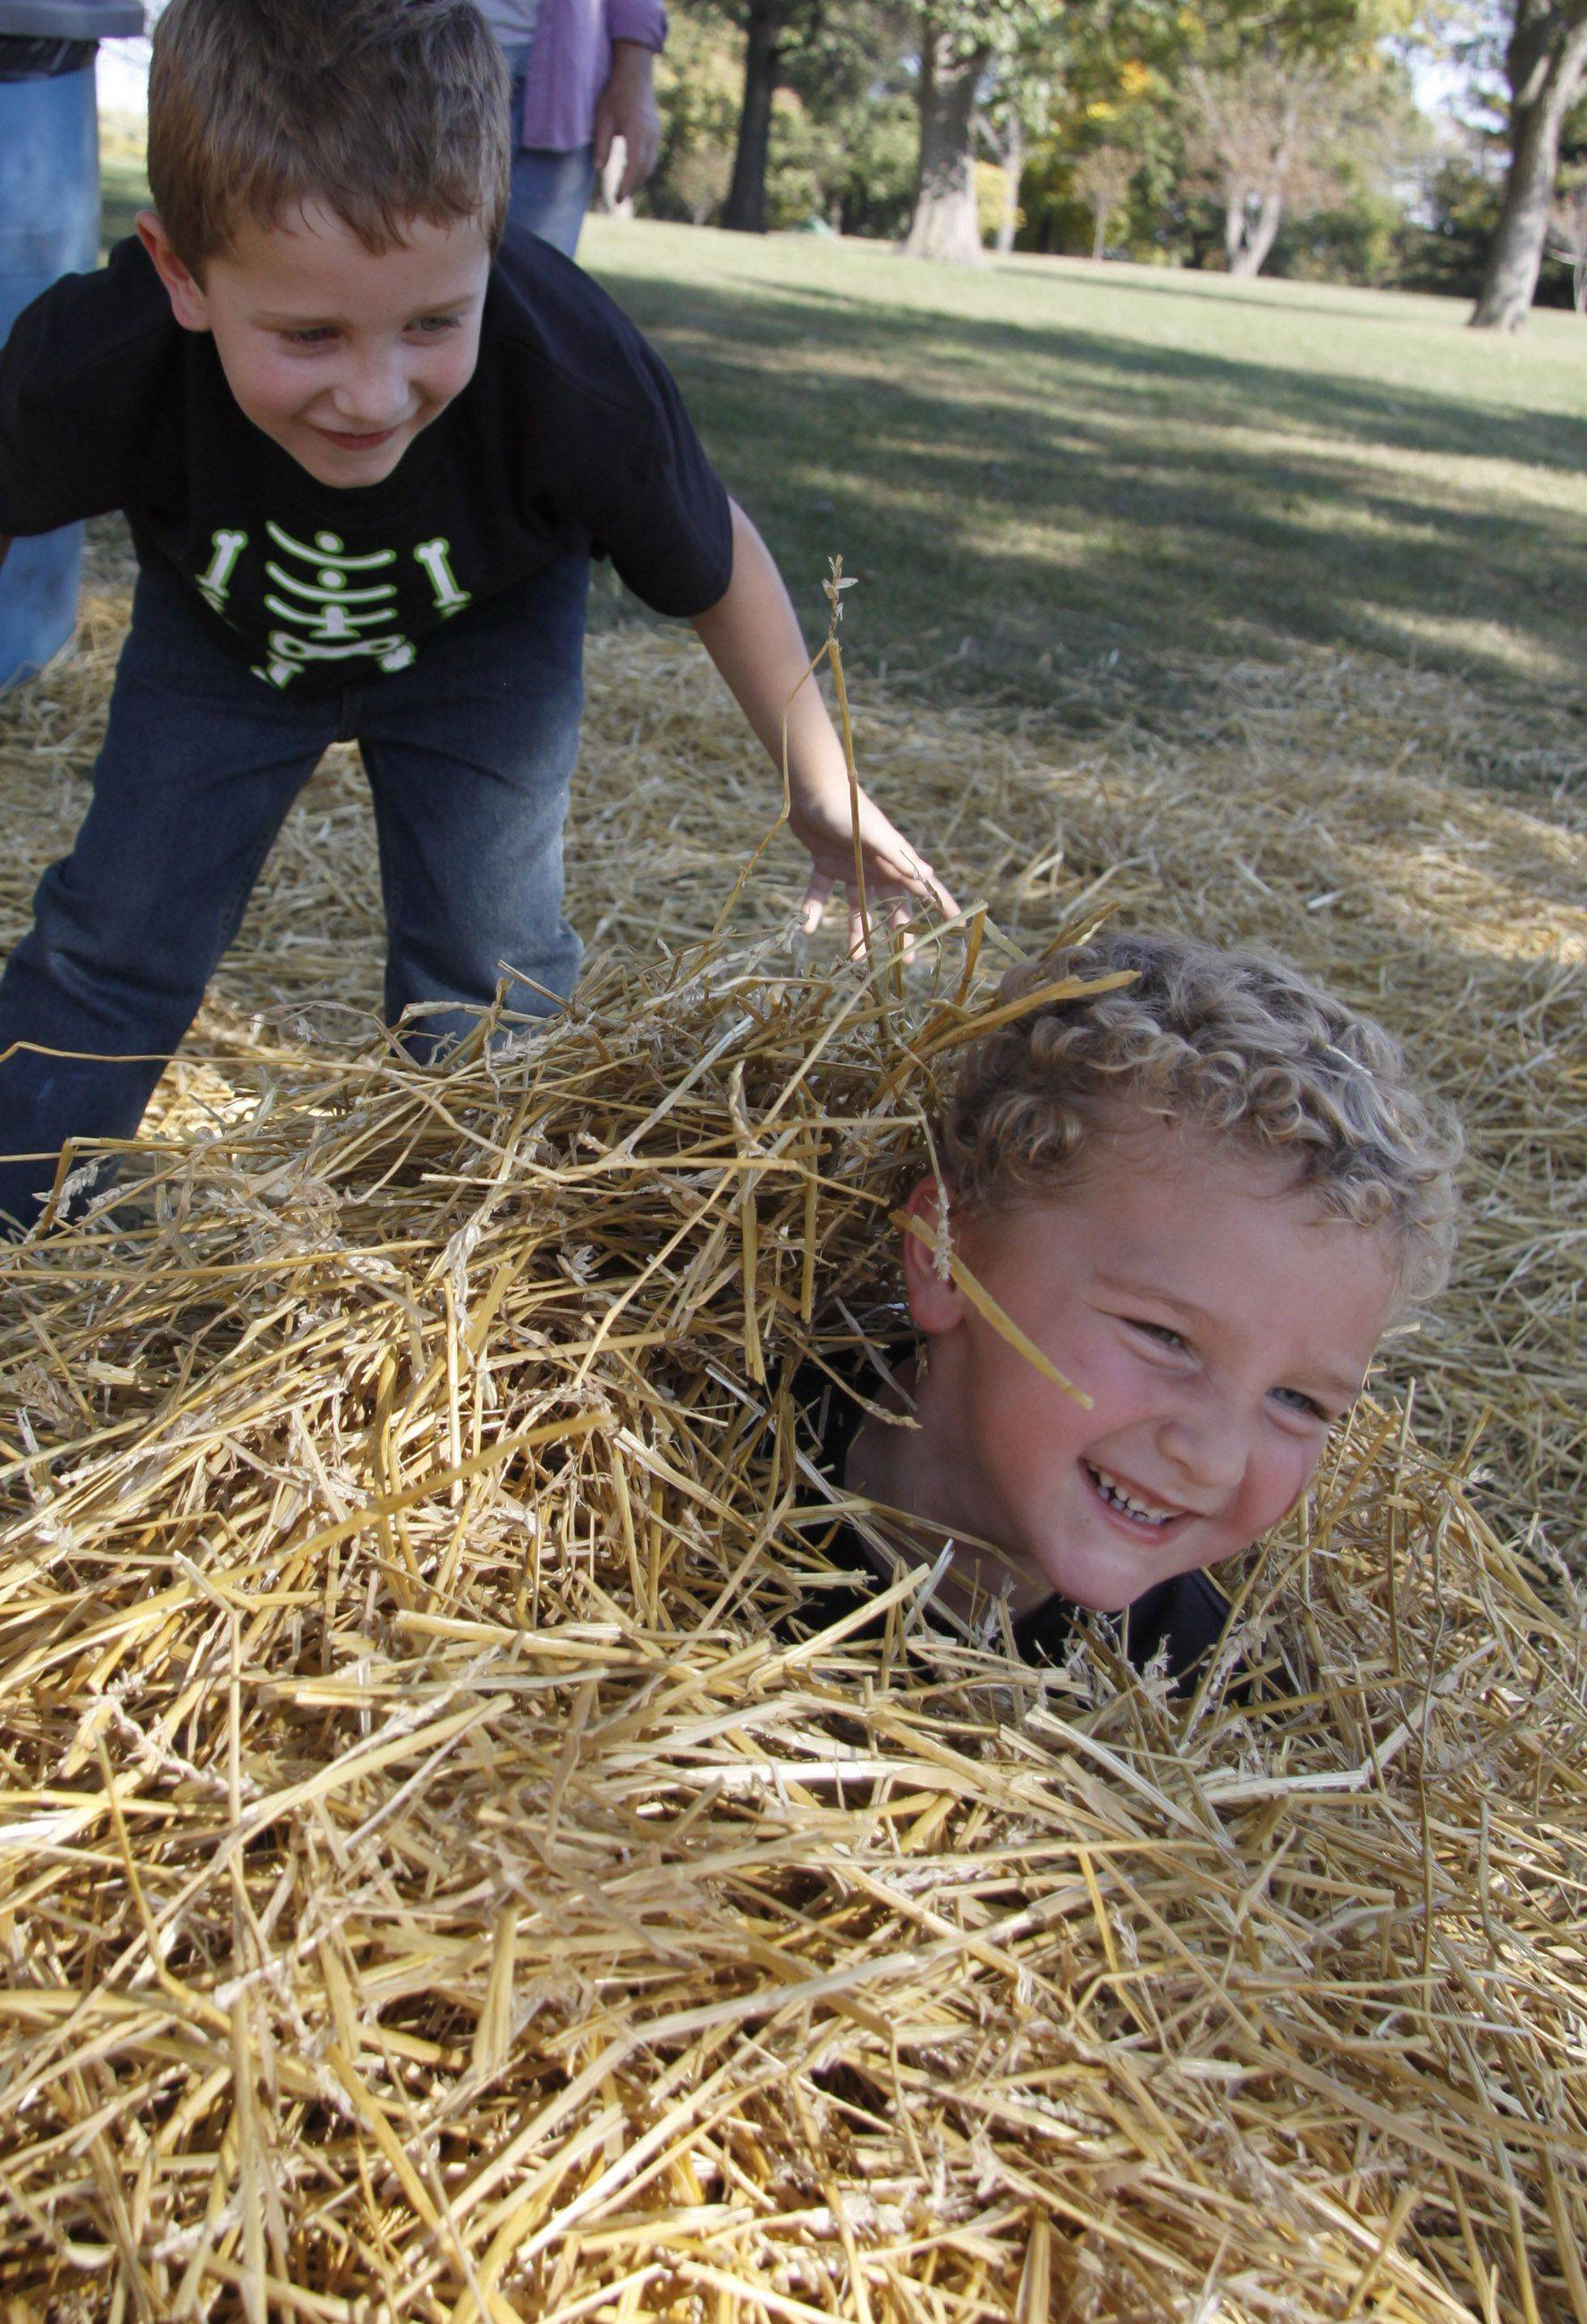 Wyatt Wezeman, 3, laughs after being buried by his brother Jackson Wezeman, 5, in the hay at Lombard Park Districts fall festival Saturday.